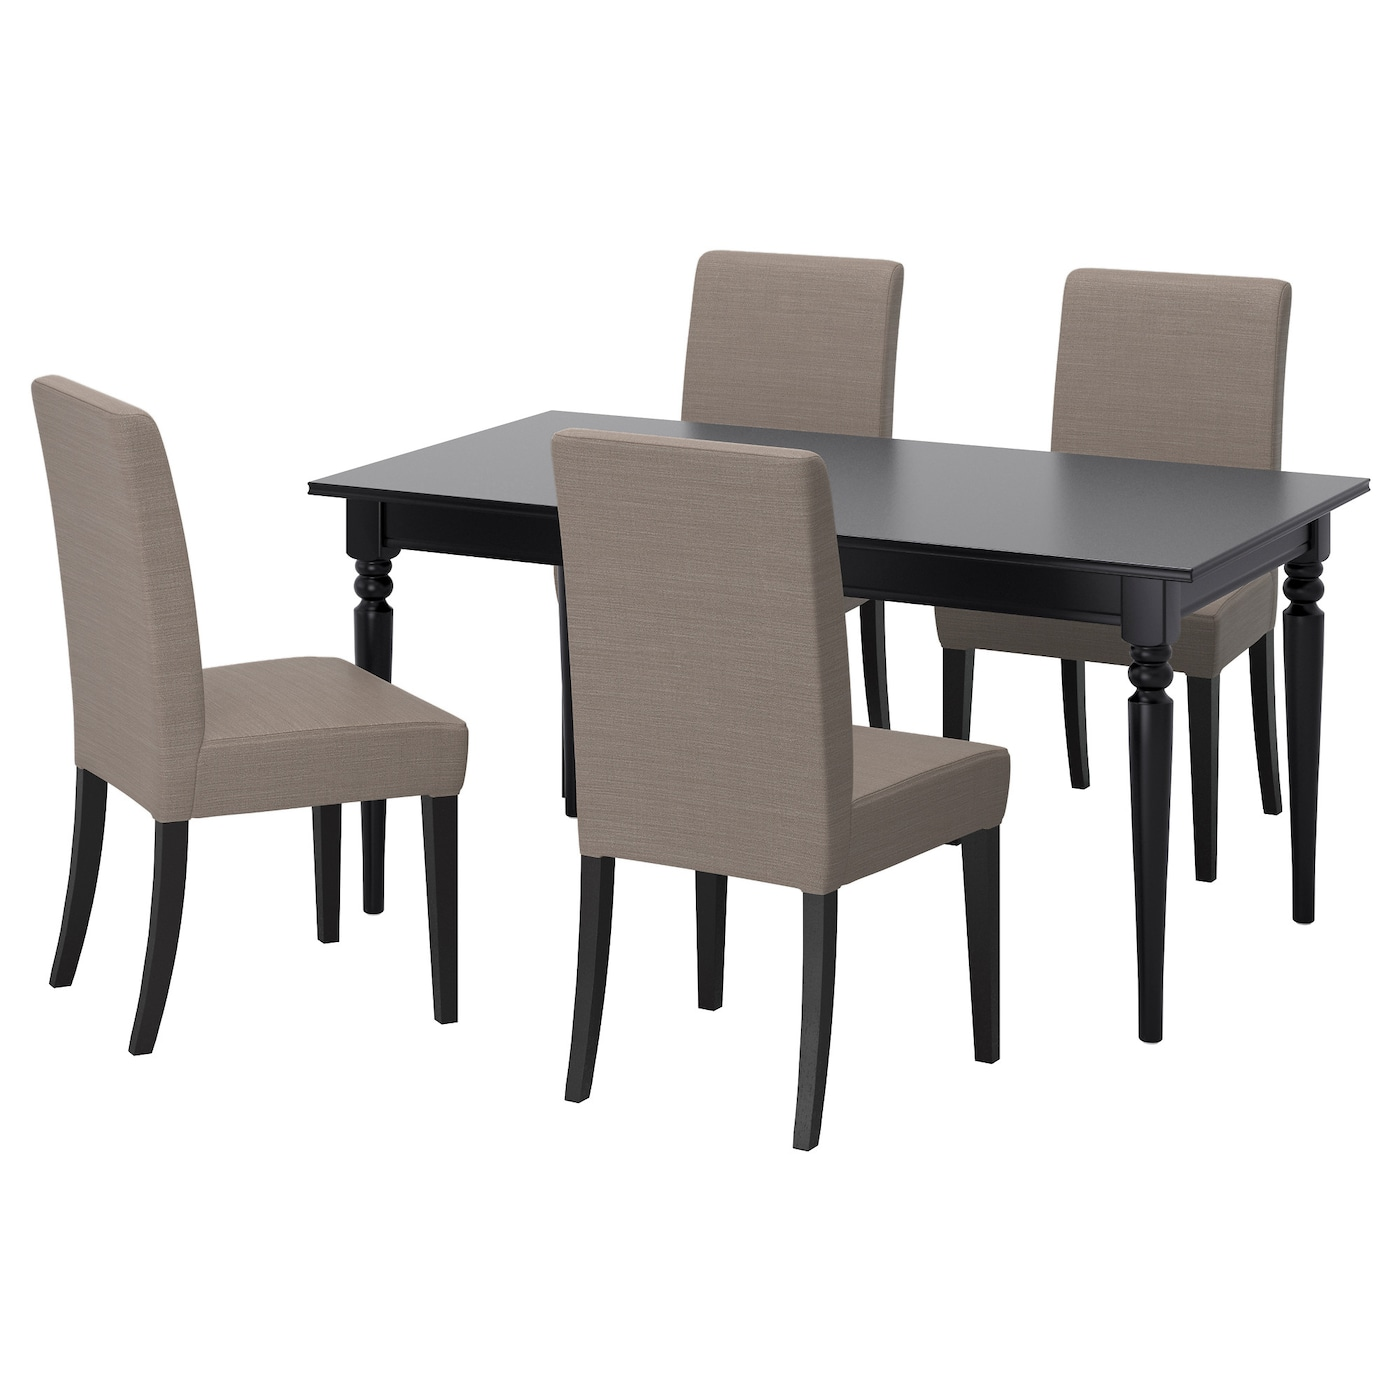 Dining Sets Up to 4 Seats